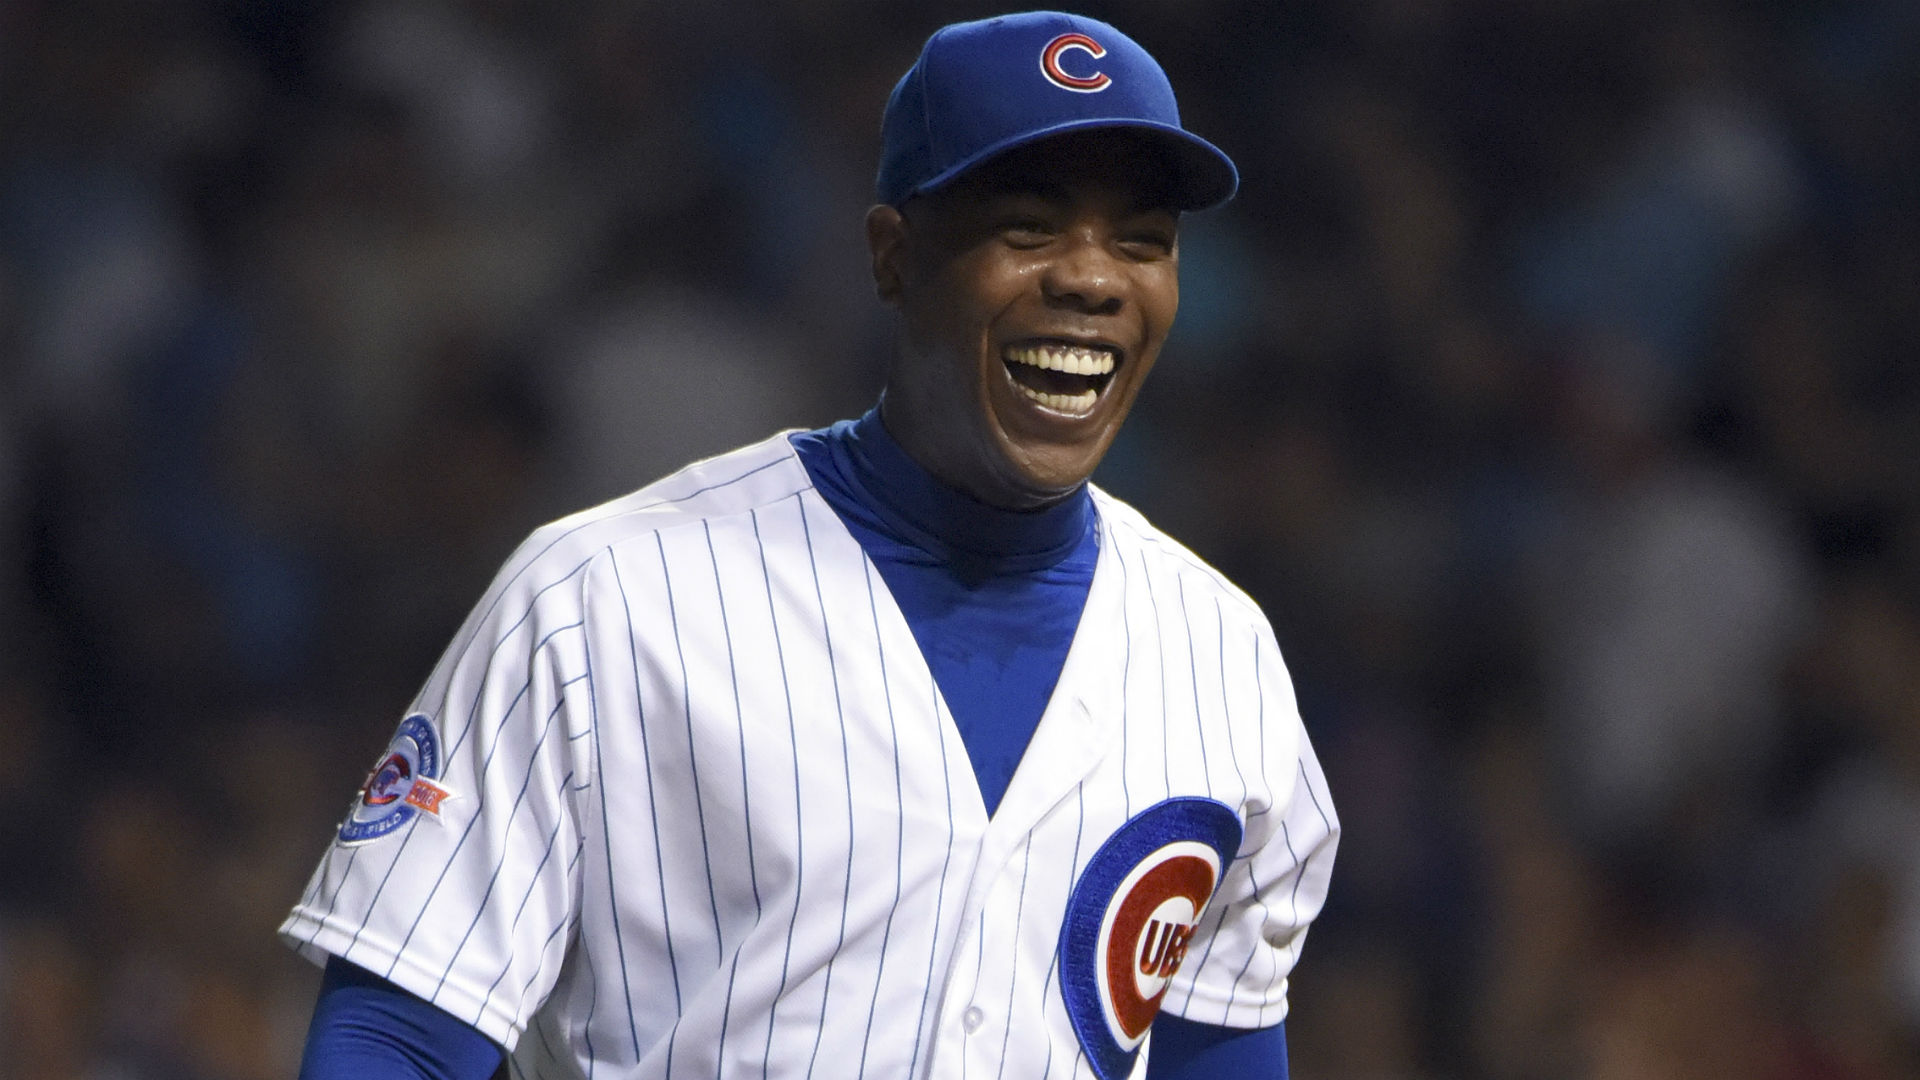 Cubs apologize for song choice as Chapman exits